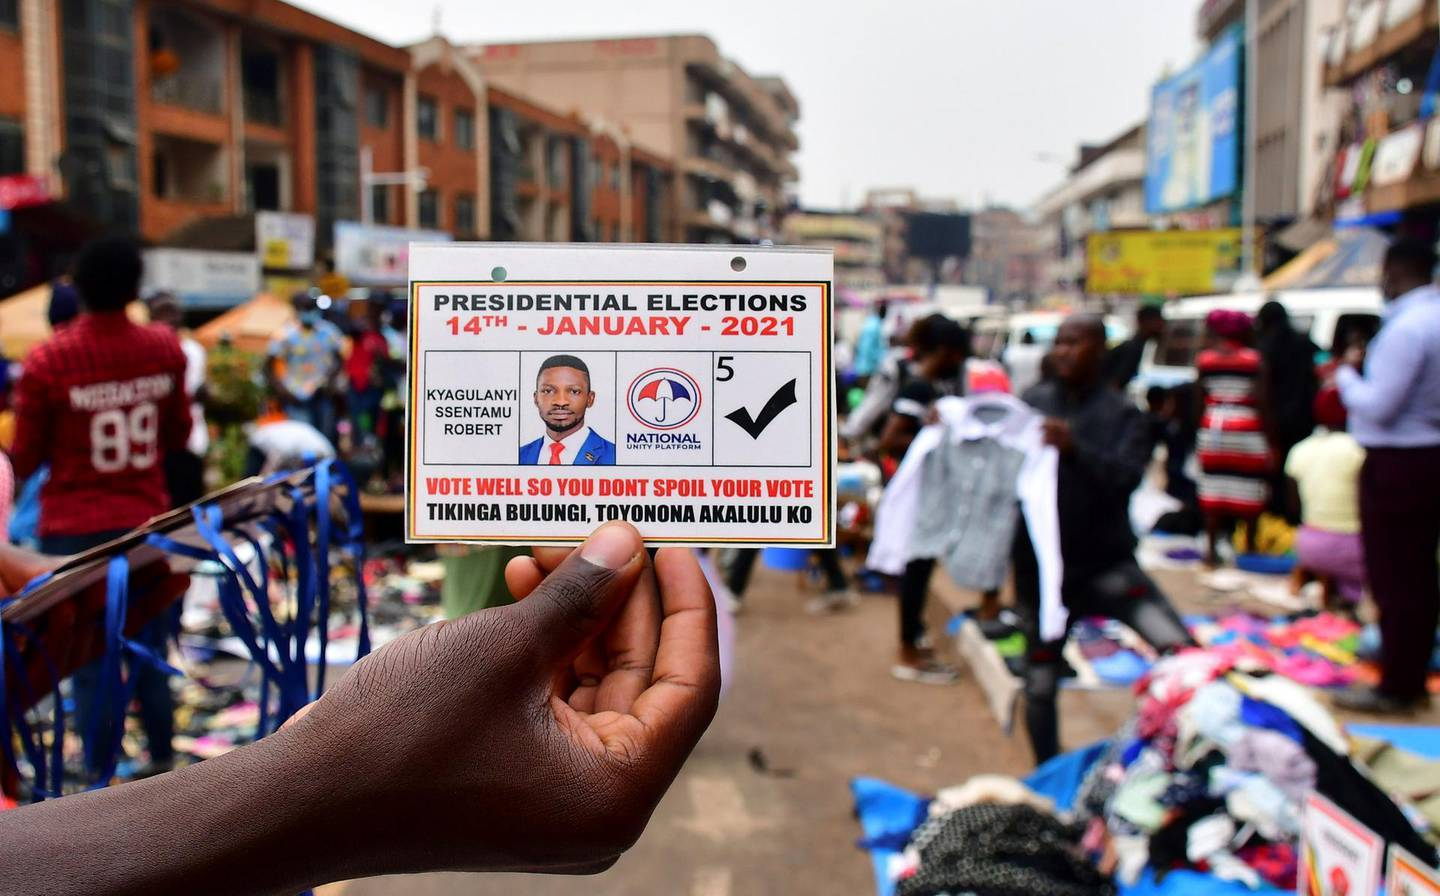 A vendor holds an electoral card of Ugandan opposition Presidential candidate Robert Kyagulanyi also known as Bobi Wine ahead of the presidential and parliamentary elections, in Kampala, Uganda January 12, 2021. REUTERS/Abubaker Lubowa